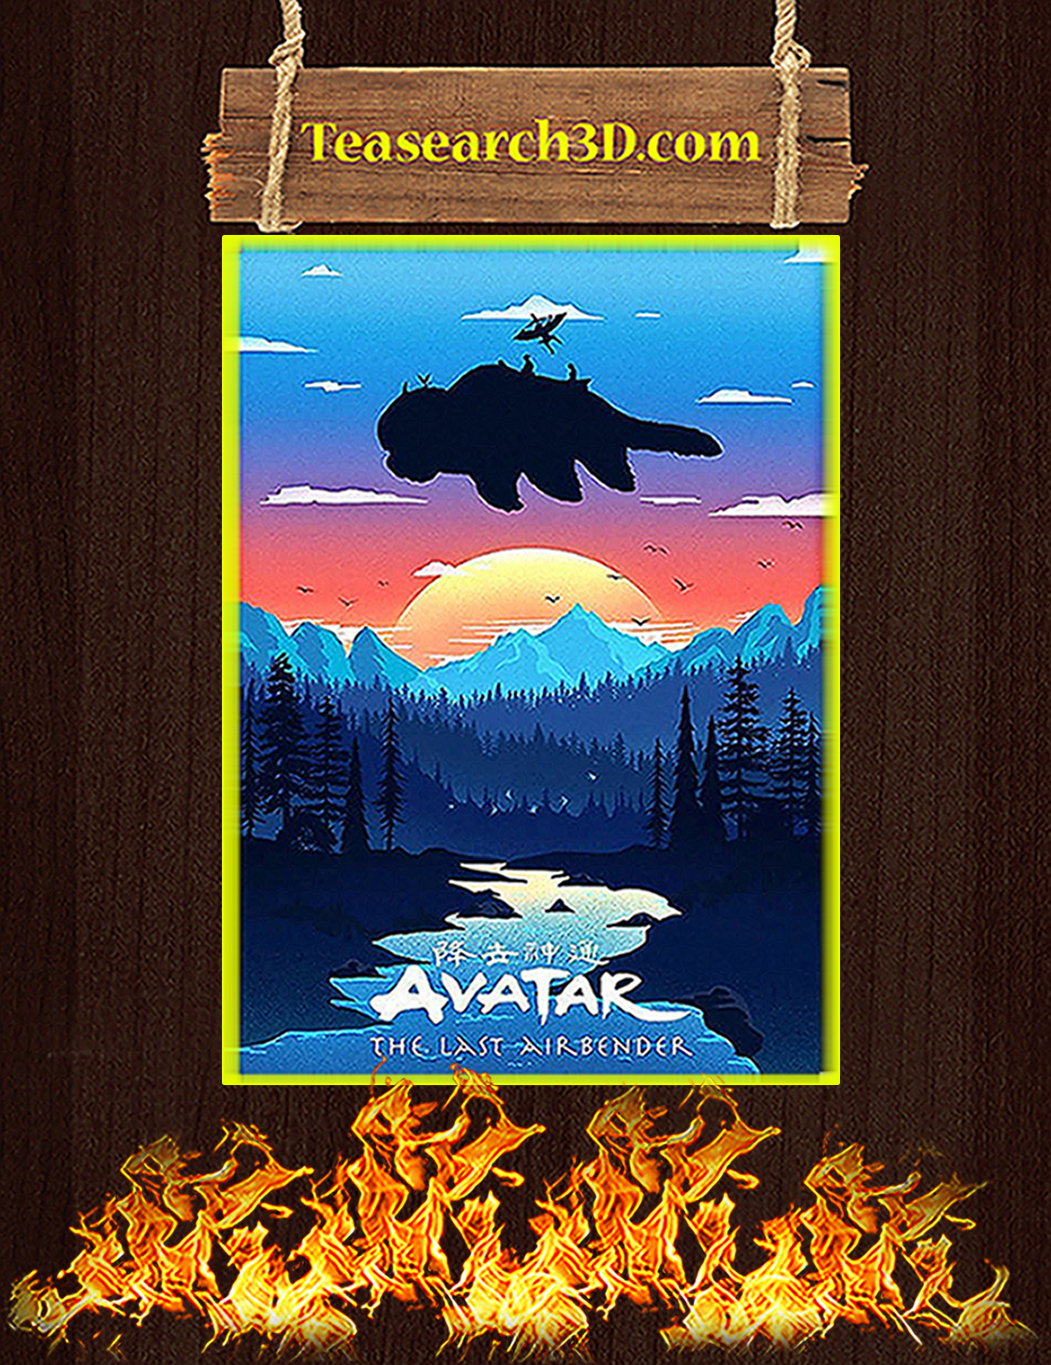 Avatar the last airbender poster A1